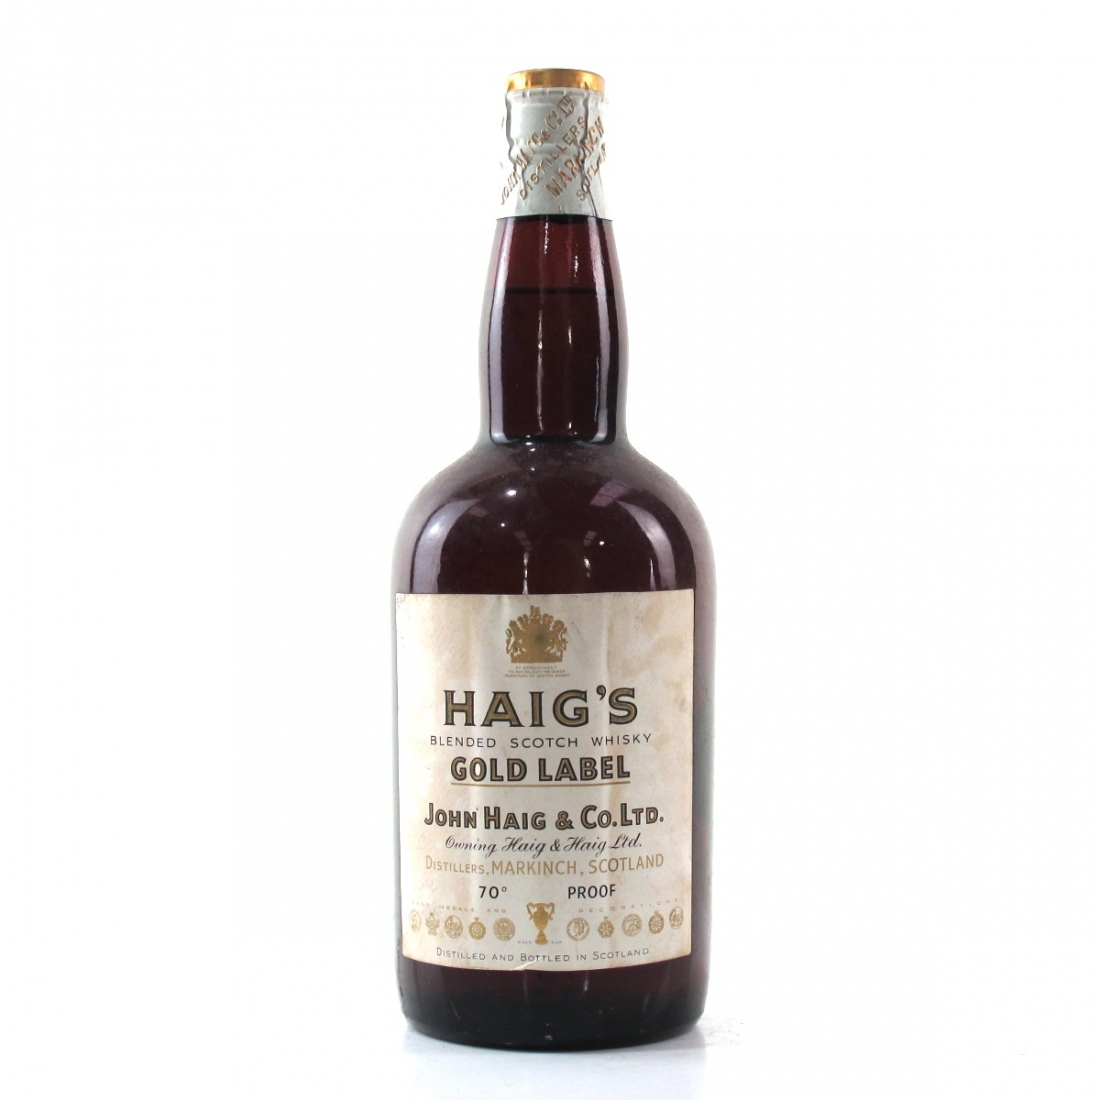 Haig's Gold Label 1960s